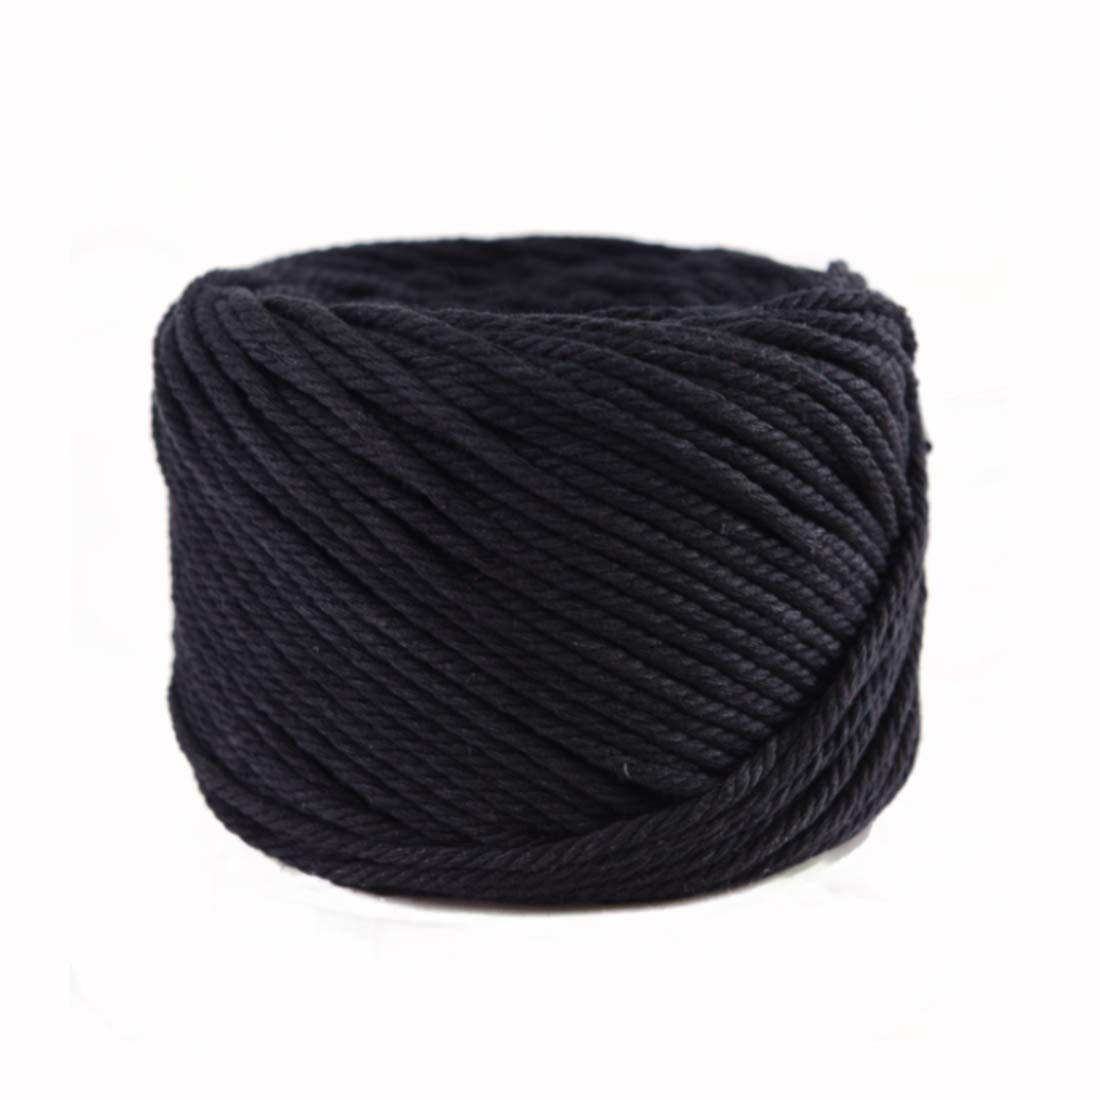 3mm x 328 Feet Soft Cotton Rope for Handmade Plant Hanger,Wall Hanging,Crafts,Knitting,Decorative Projects Black Color Cotton String SUNTQ Macrame Cord 4-Strand Twisted 100/% Natural Cotton